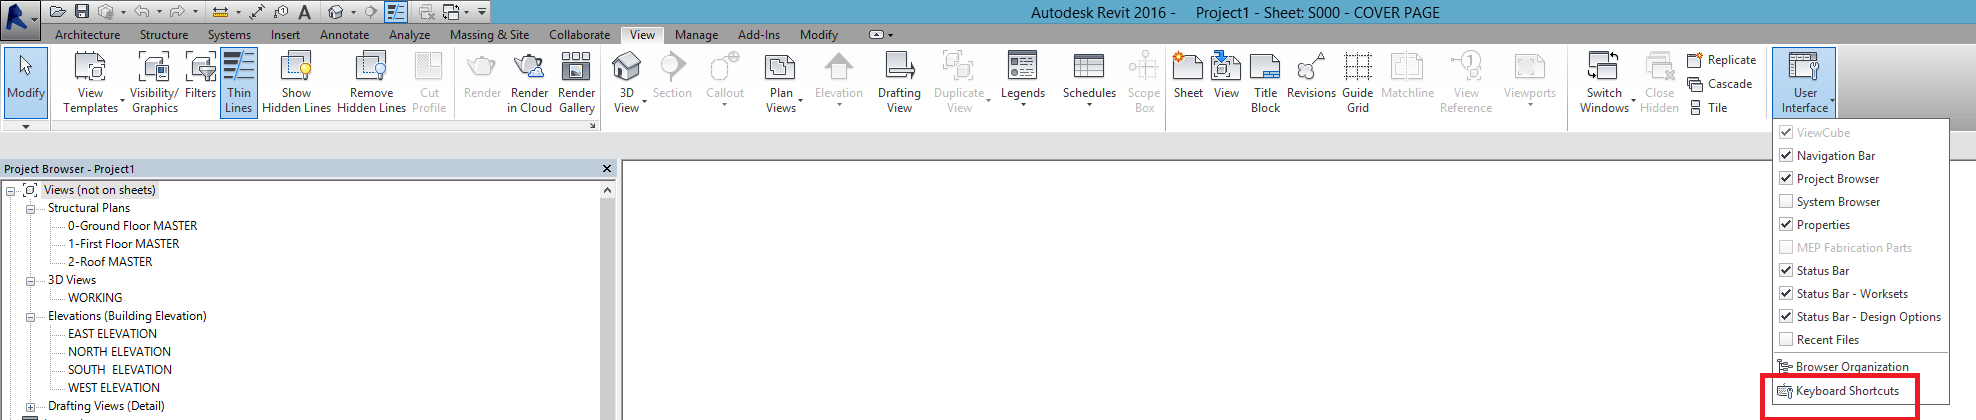 Revit Keyboard Shortcuts - KeyboardShotcuts_View tab